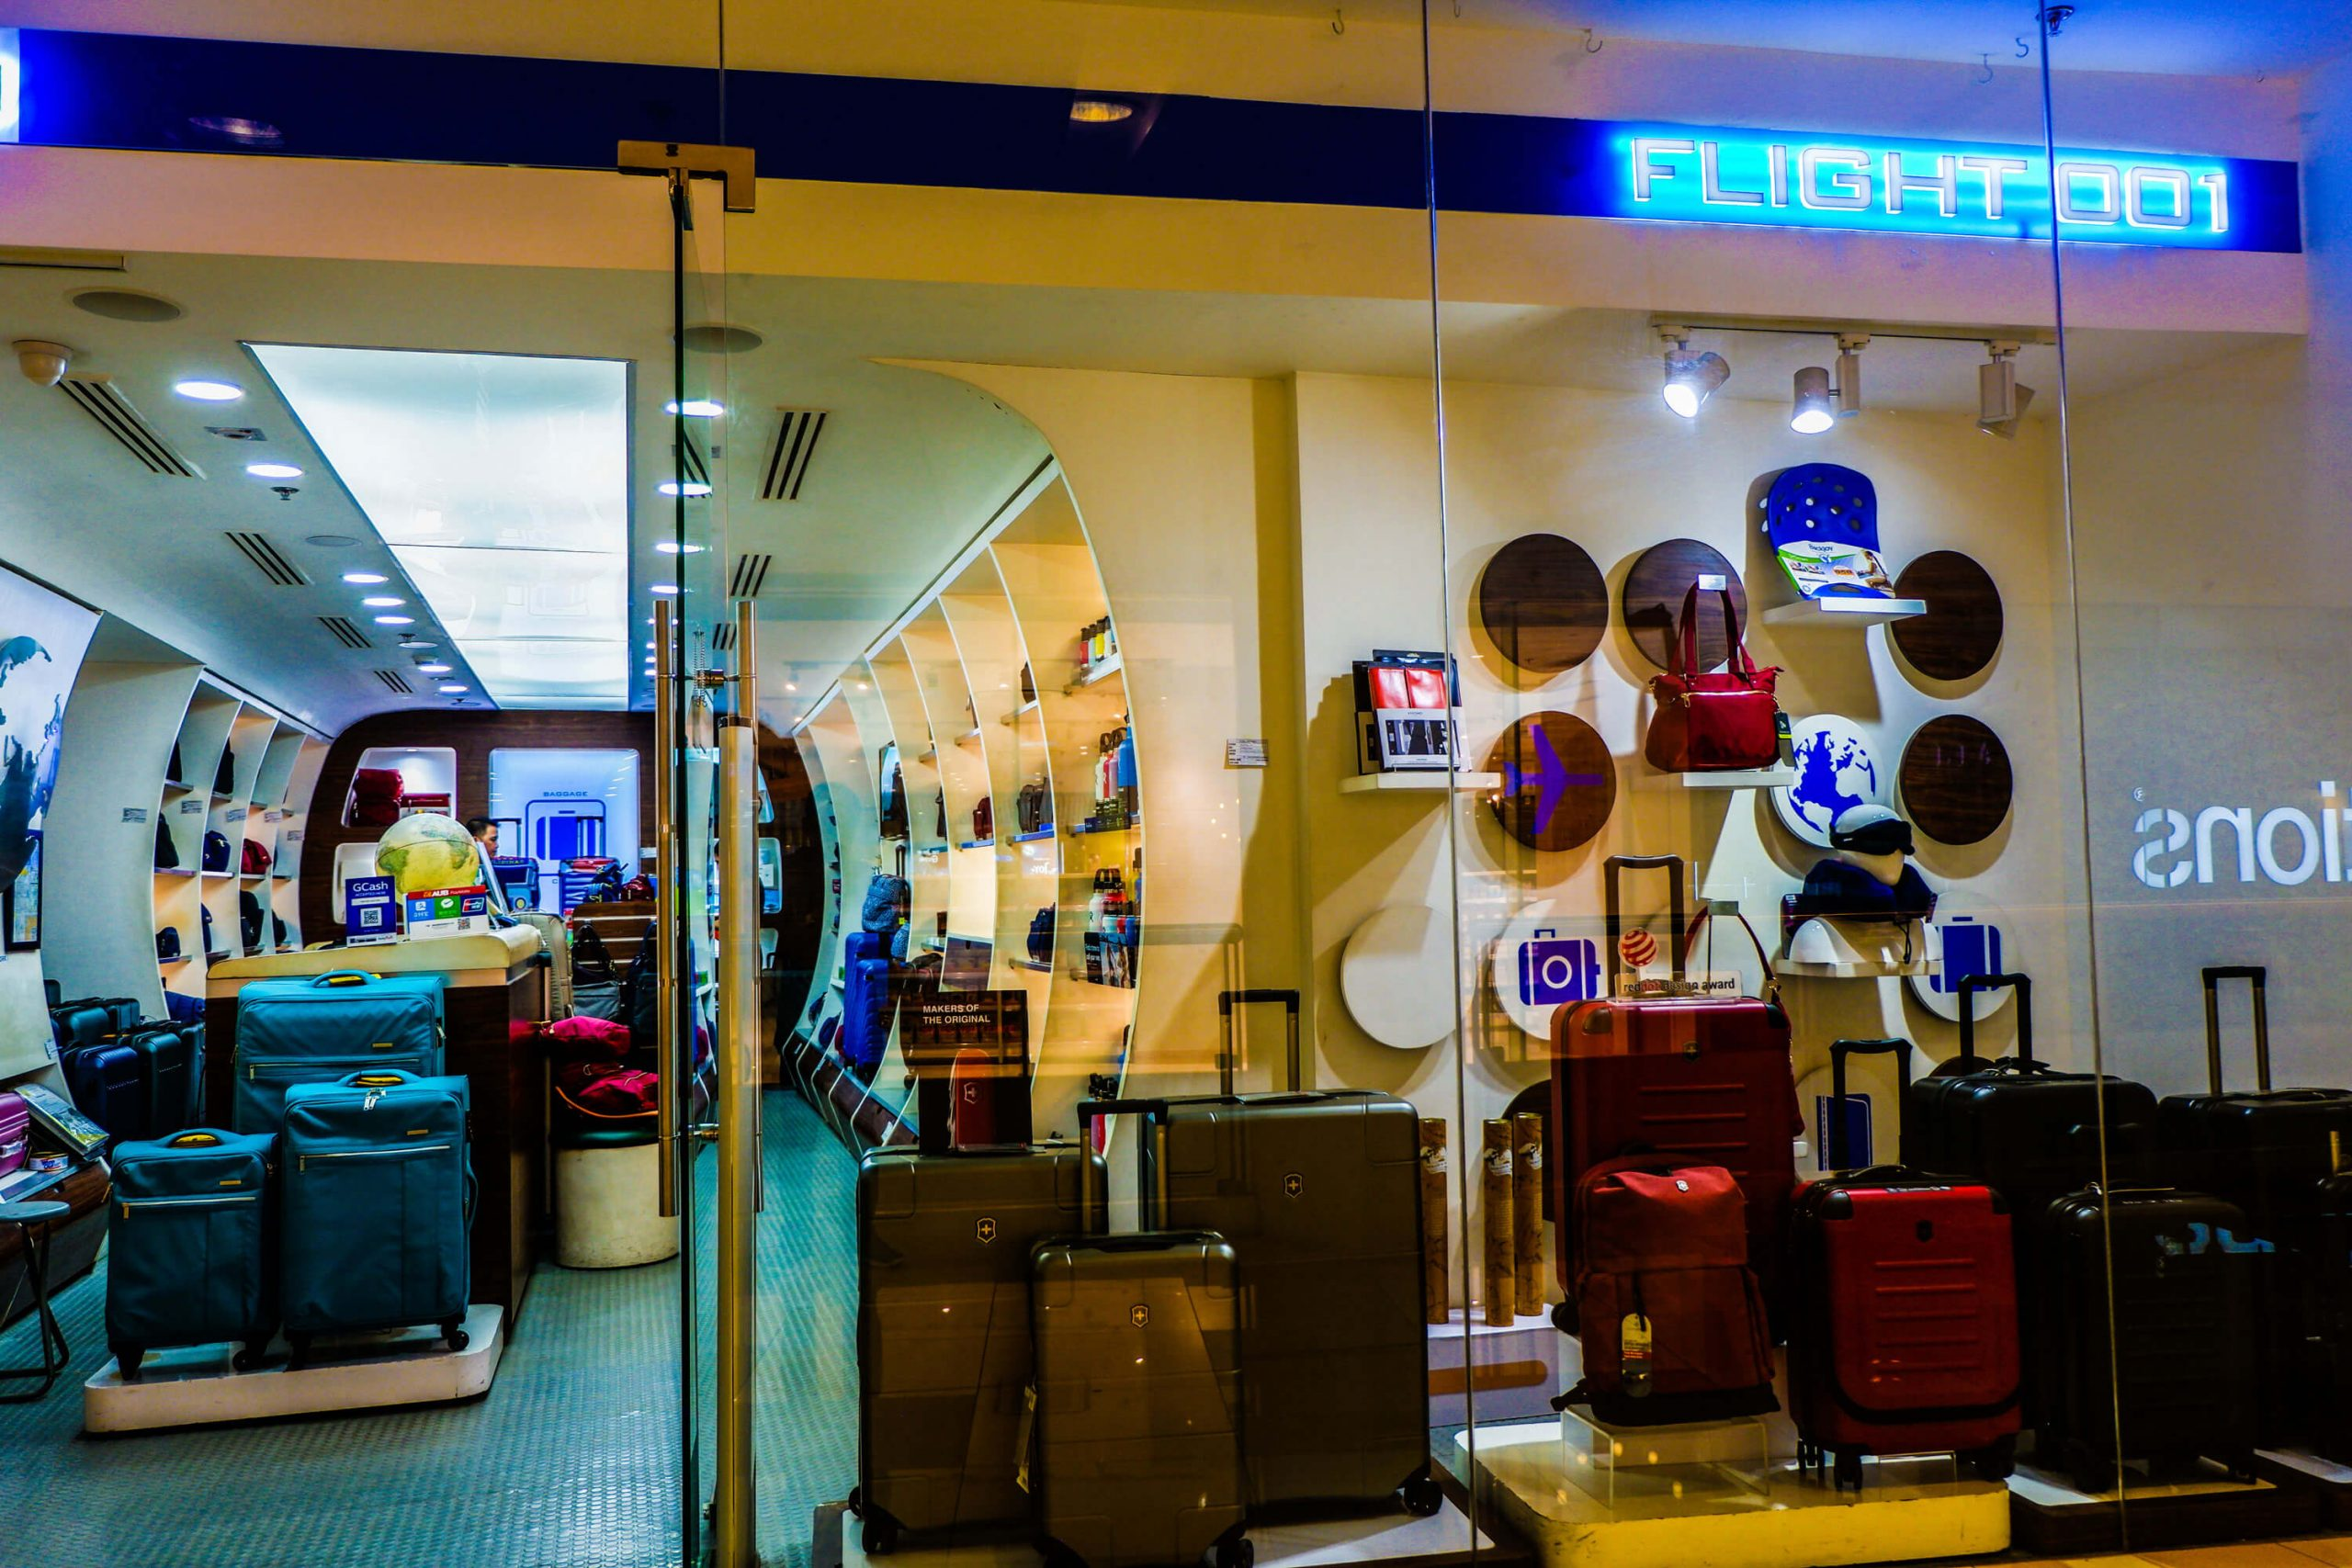 GEAR UP for your next adventure by visiting Flight 001 in Ayala Center Cebu